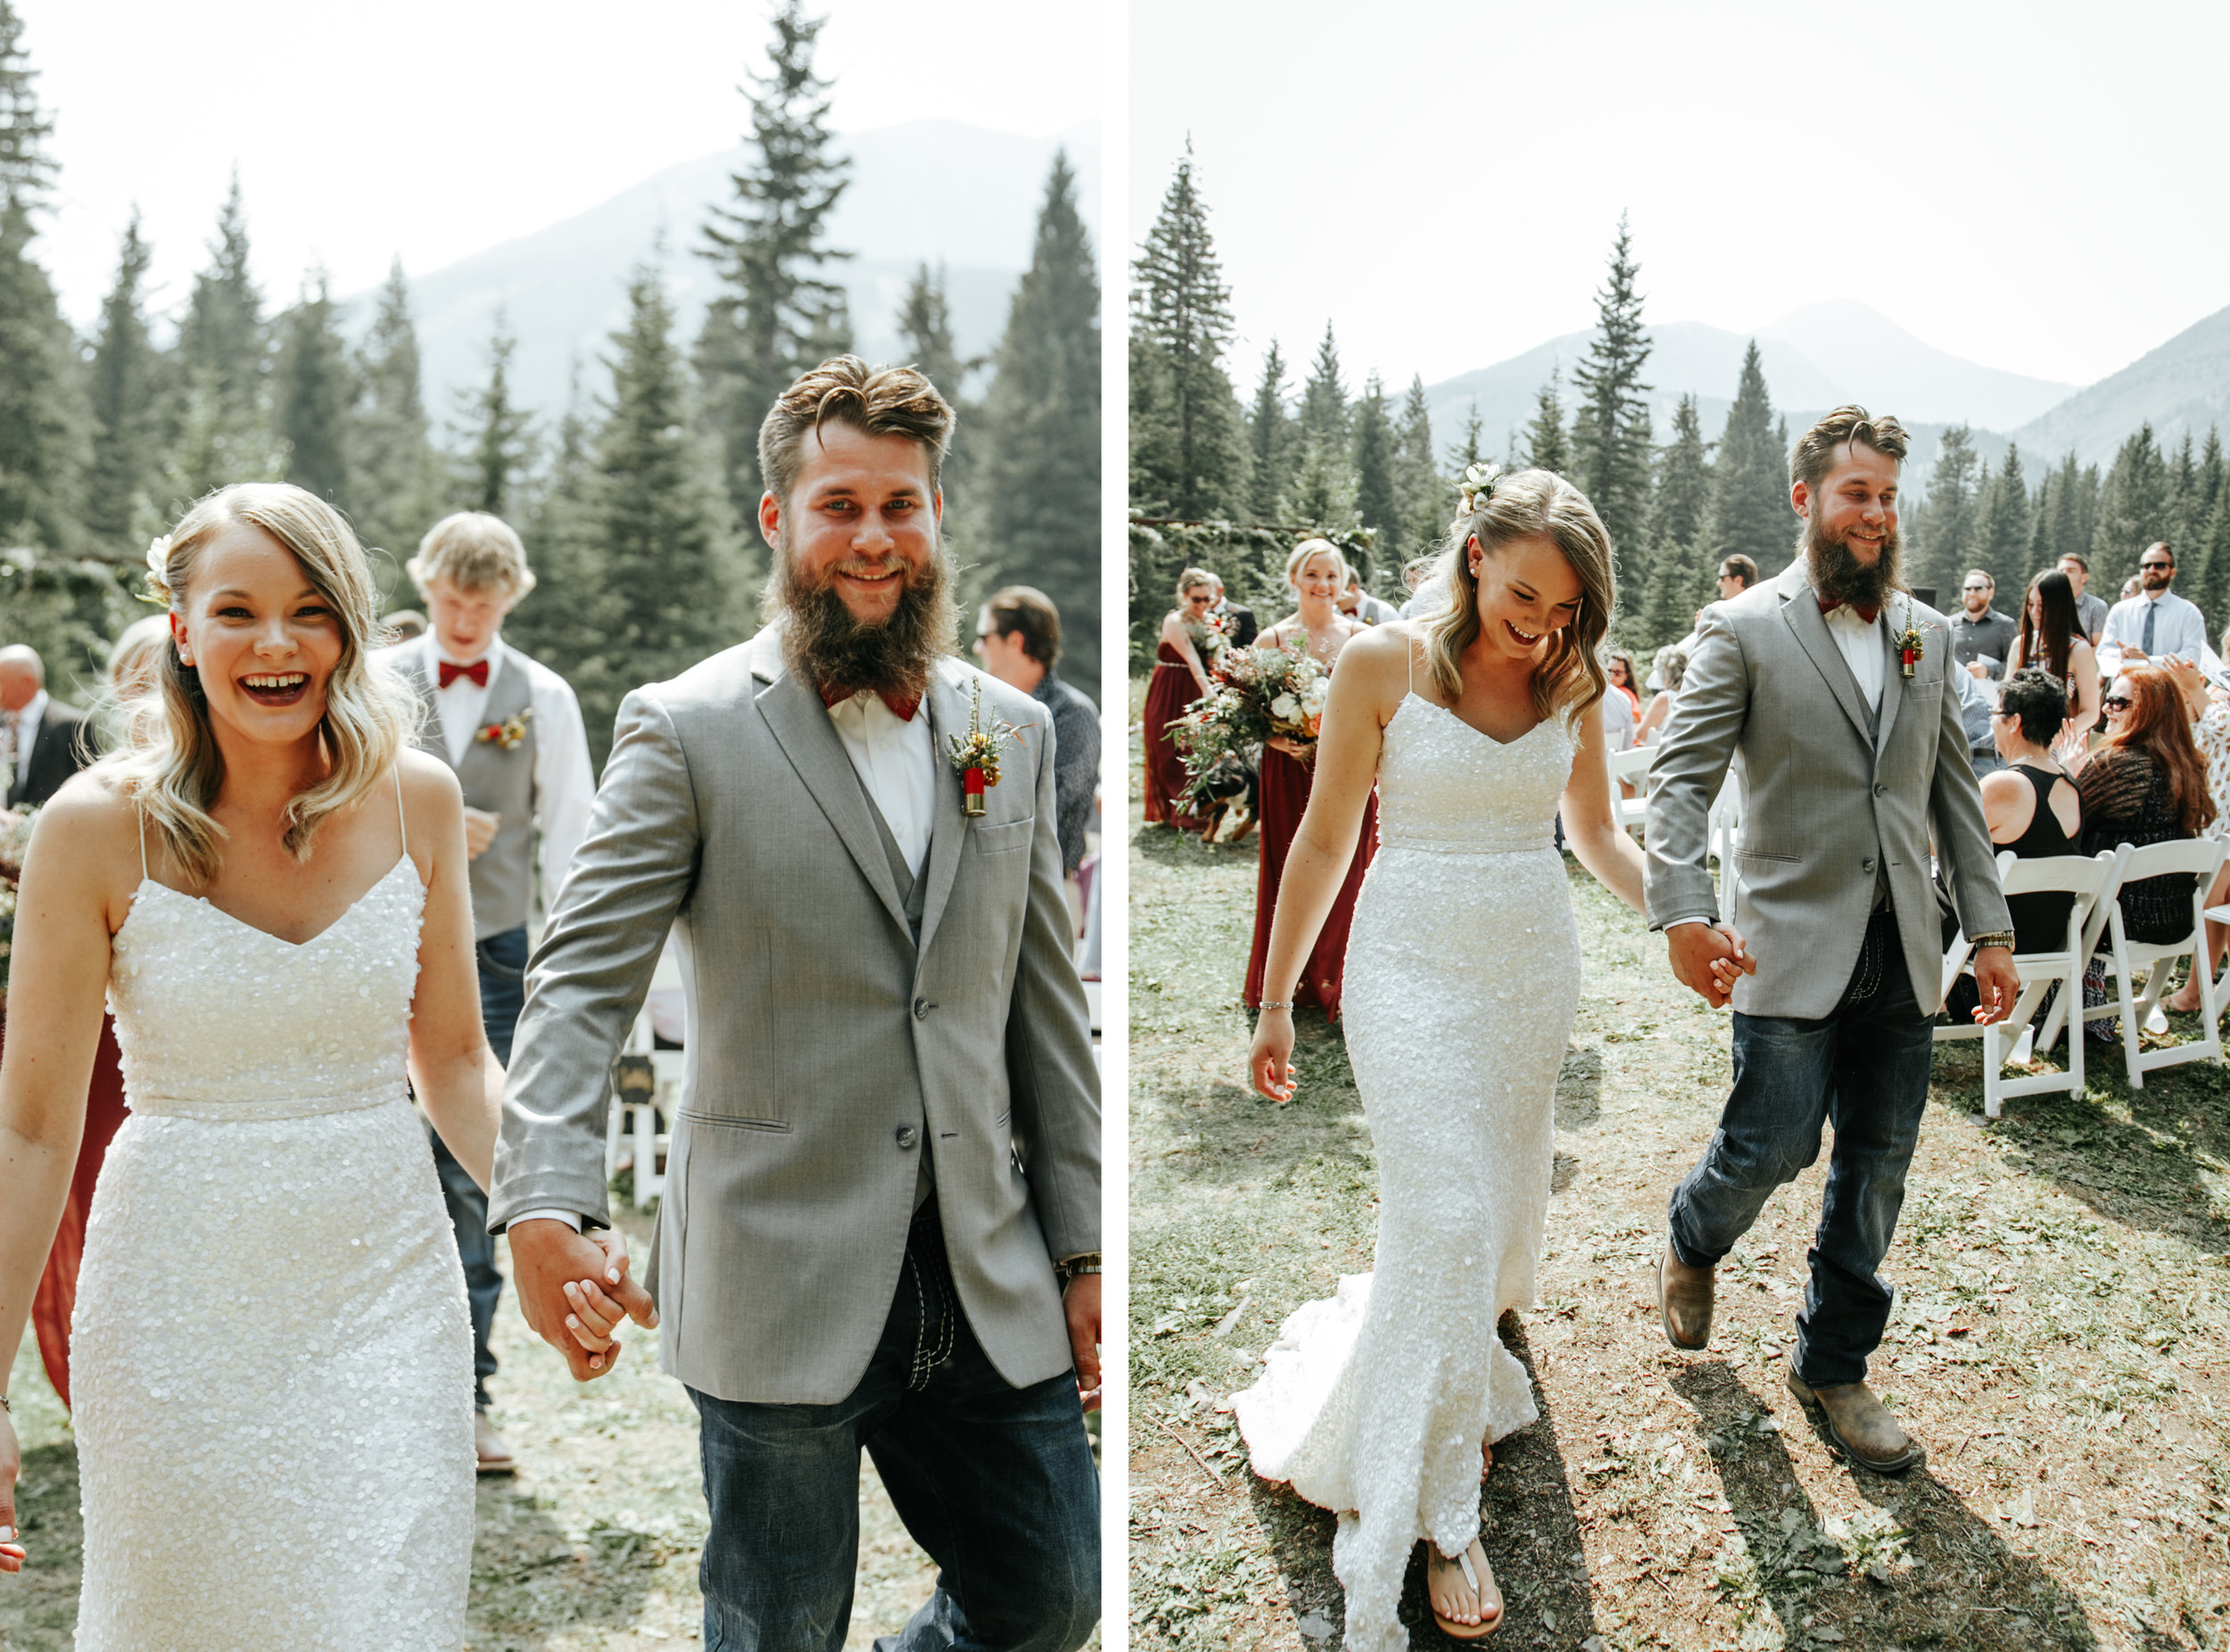 castle-mountain-wedding-photographer-love-and-be-loved-photography-lethbridge-pincher-creek-crowsnest-pass-yannick-rylee-photo-image-picture-79.jpg